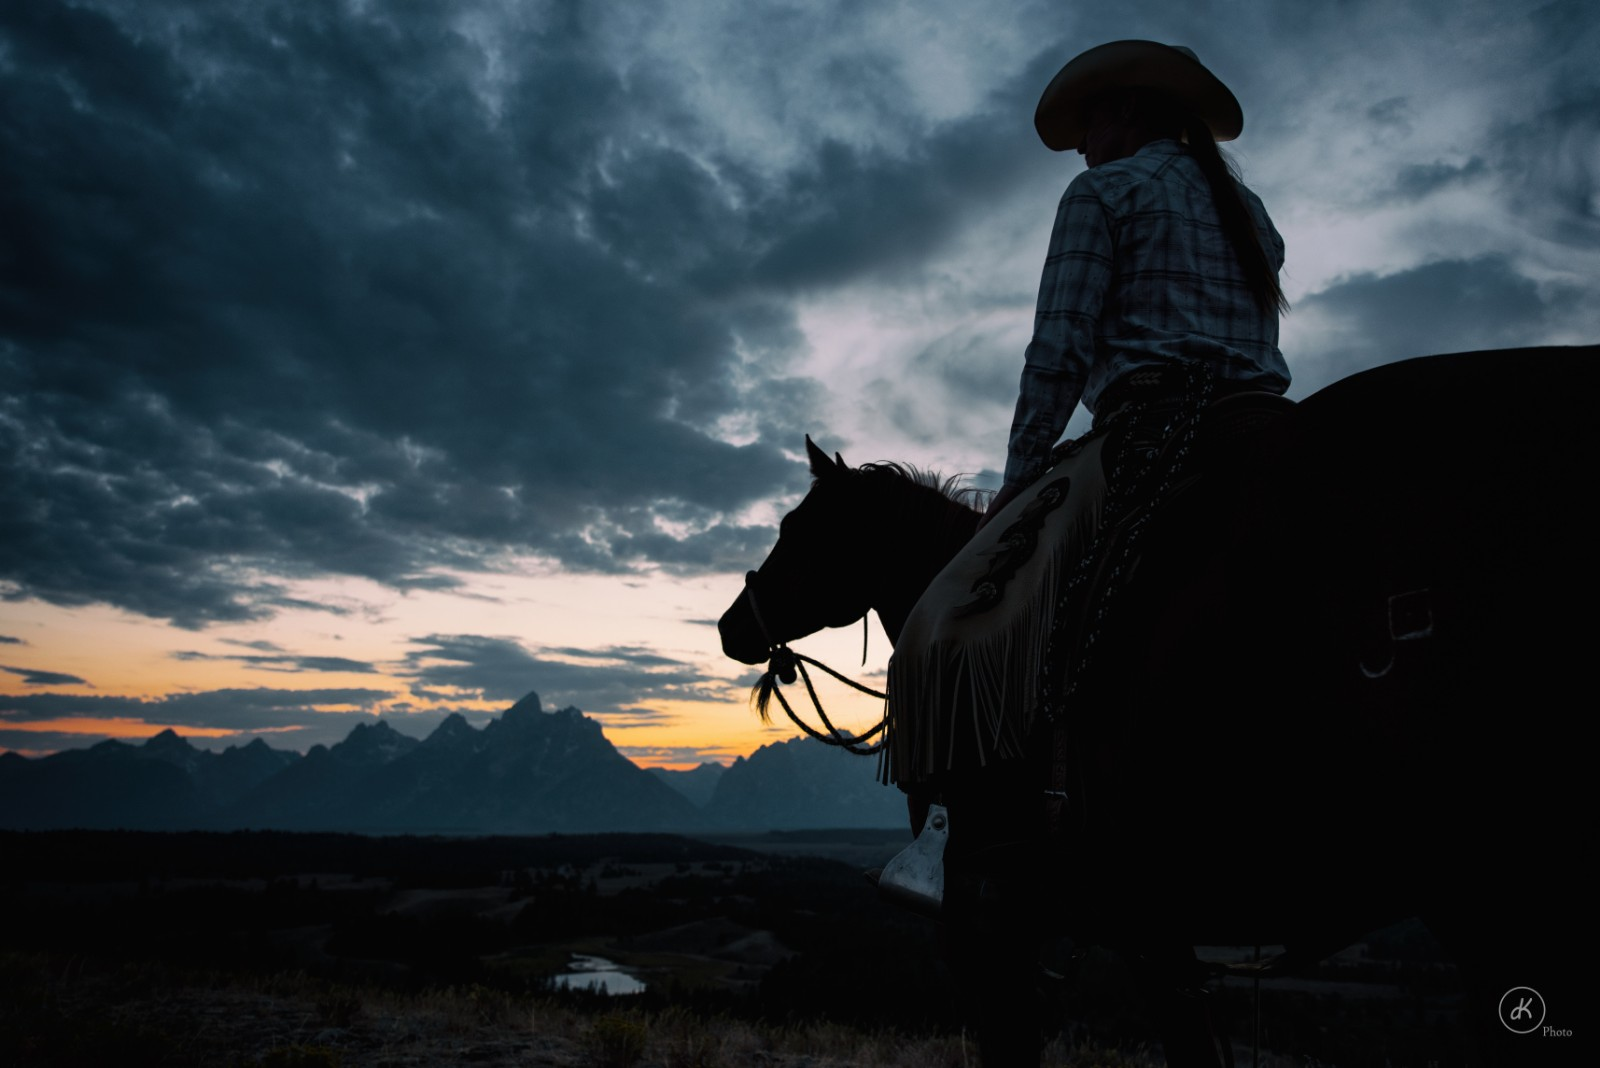 Person riding horse in the shadows at dude ranch with mountains and sunset in background